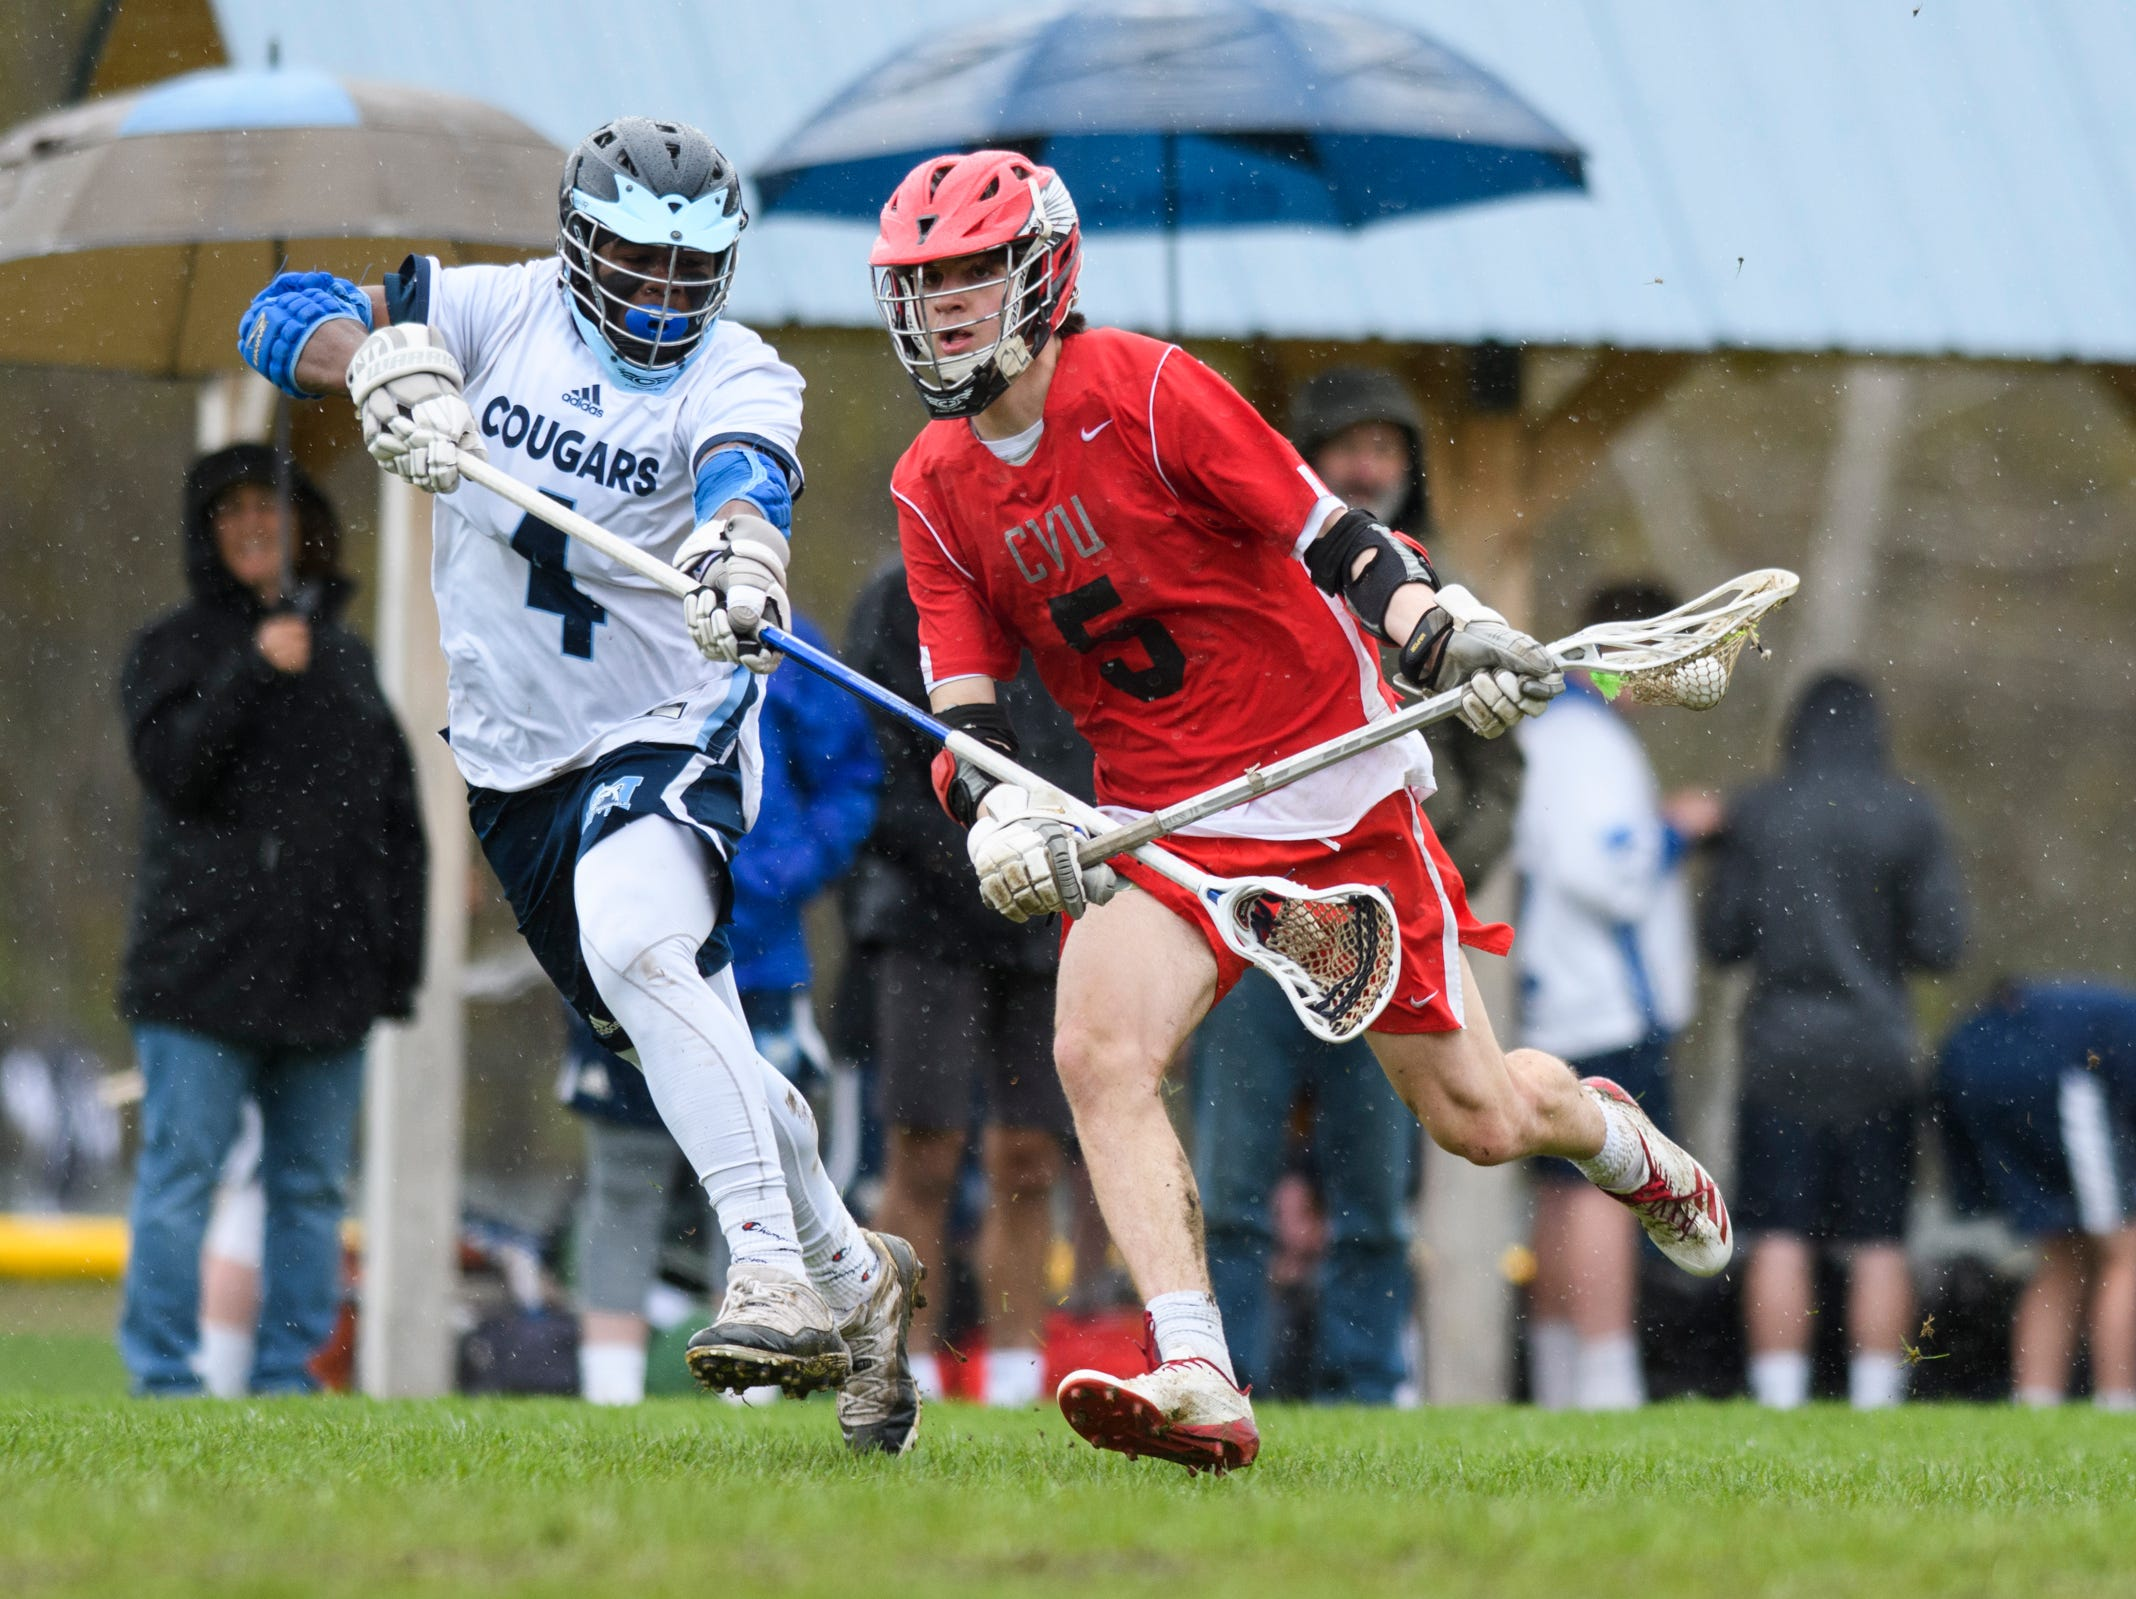 CVU's Jake Schaefer (5) runs past MMU's Jehric Hackney (4) with the ball during the boys lacrosse game between the Champlain Valley Union Redhawks and the Mount Mansfield Cougars at MMU High School on Tuesday afternoon May 14, 2019 in Jericho, Vermont.